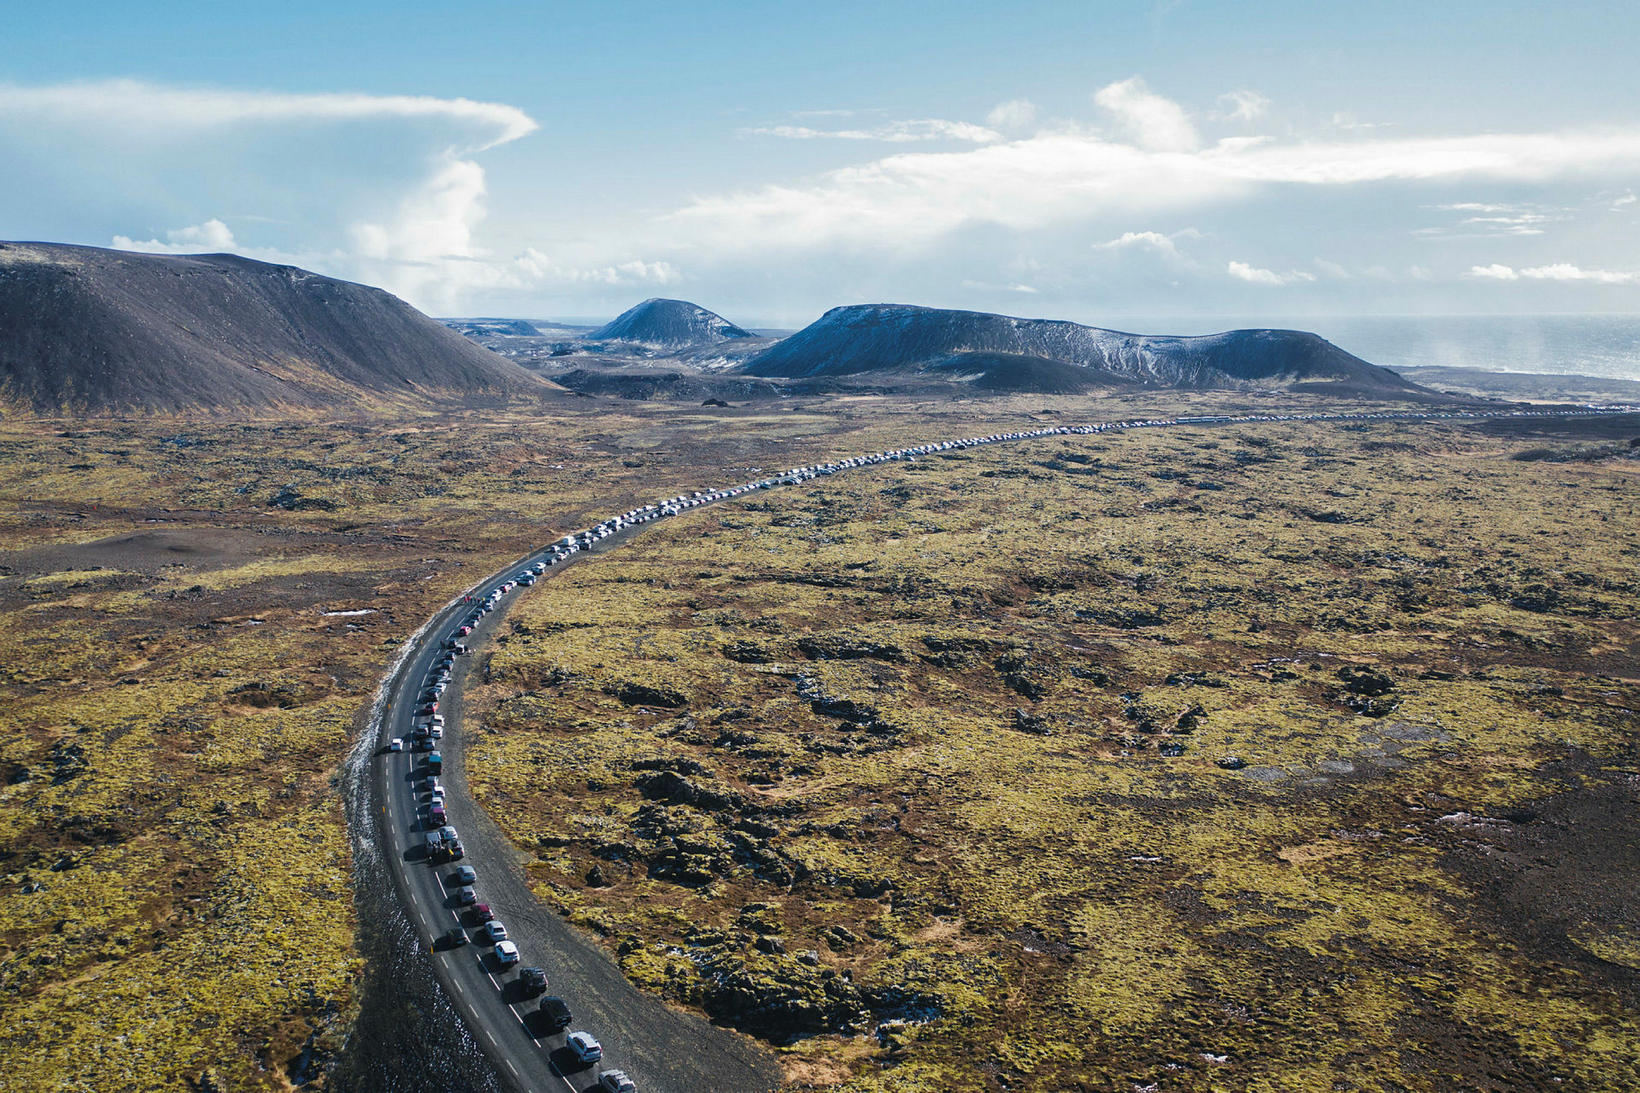 A long line of cars driving toward the eruption site …